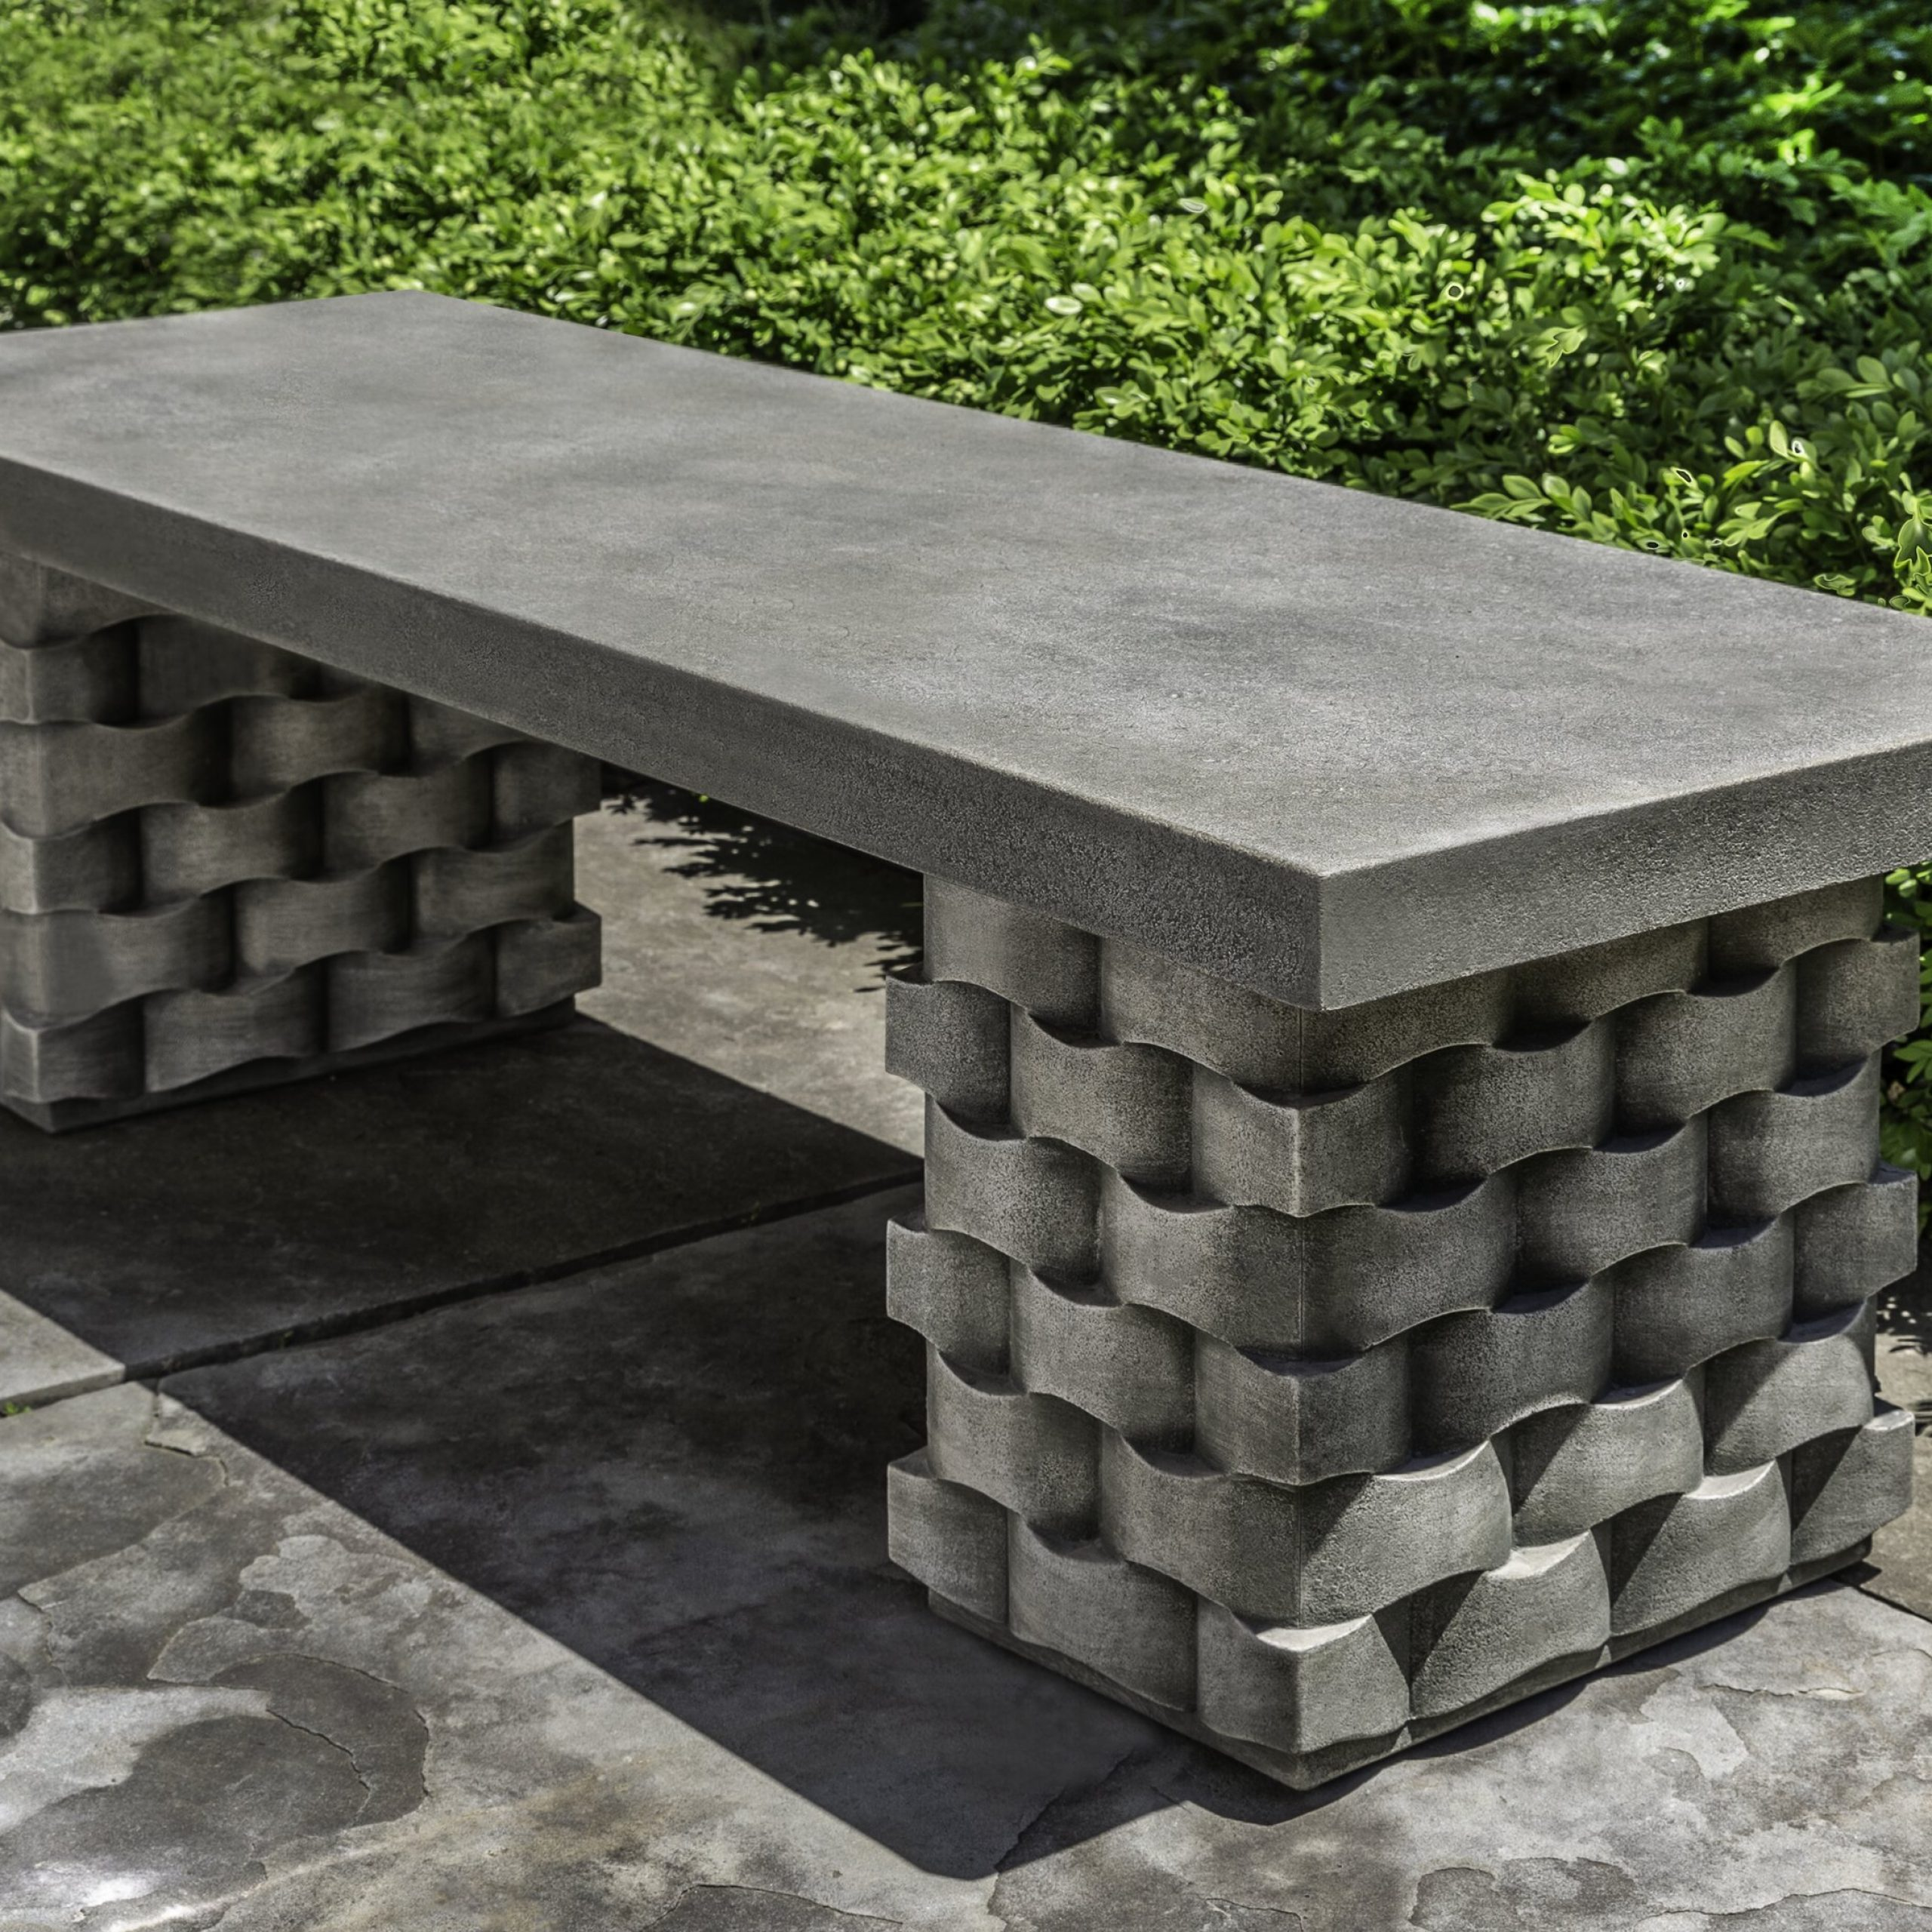 Gabbert Wooden Garden Benches For Most Up To Date August Grove Anaya Stone Garden Bench (View 29 of 30)